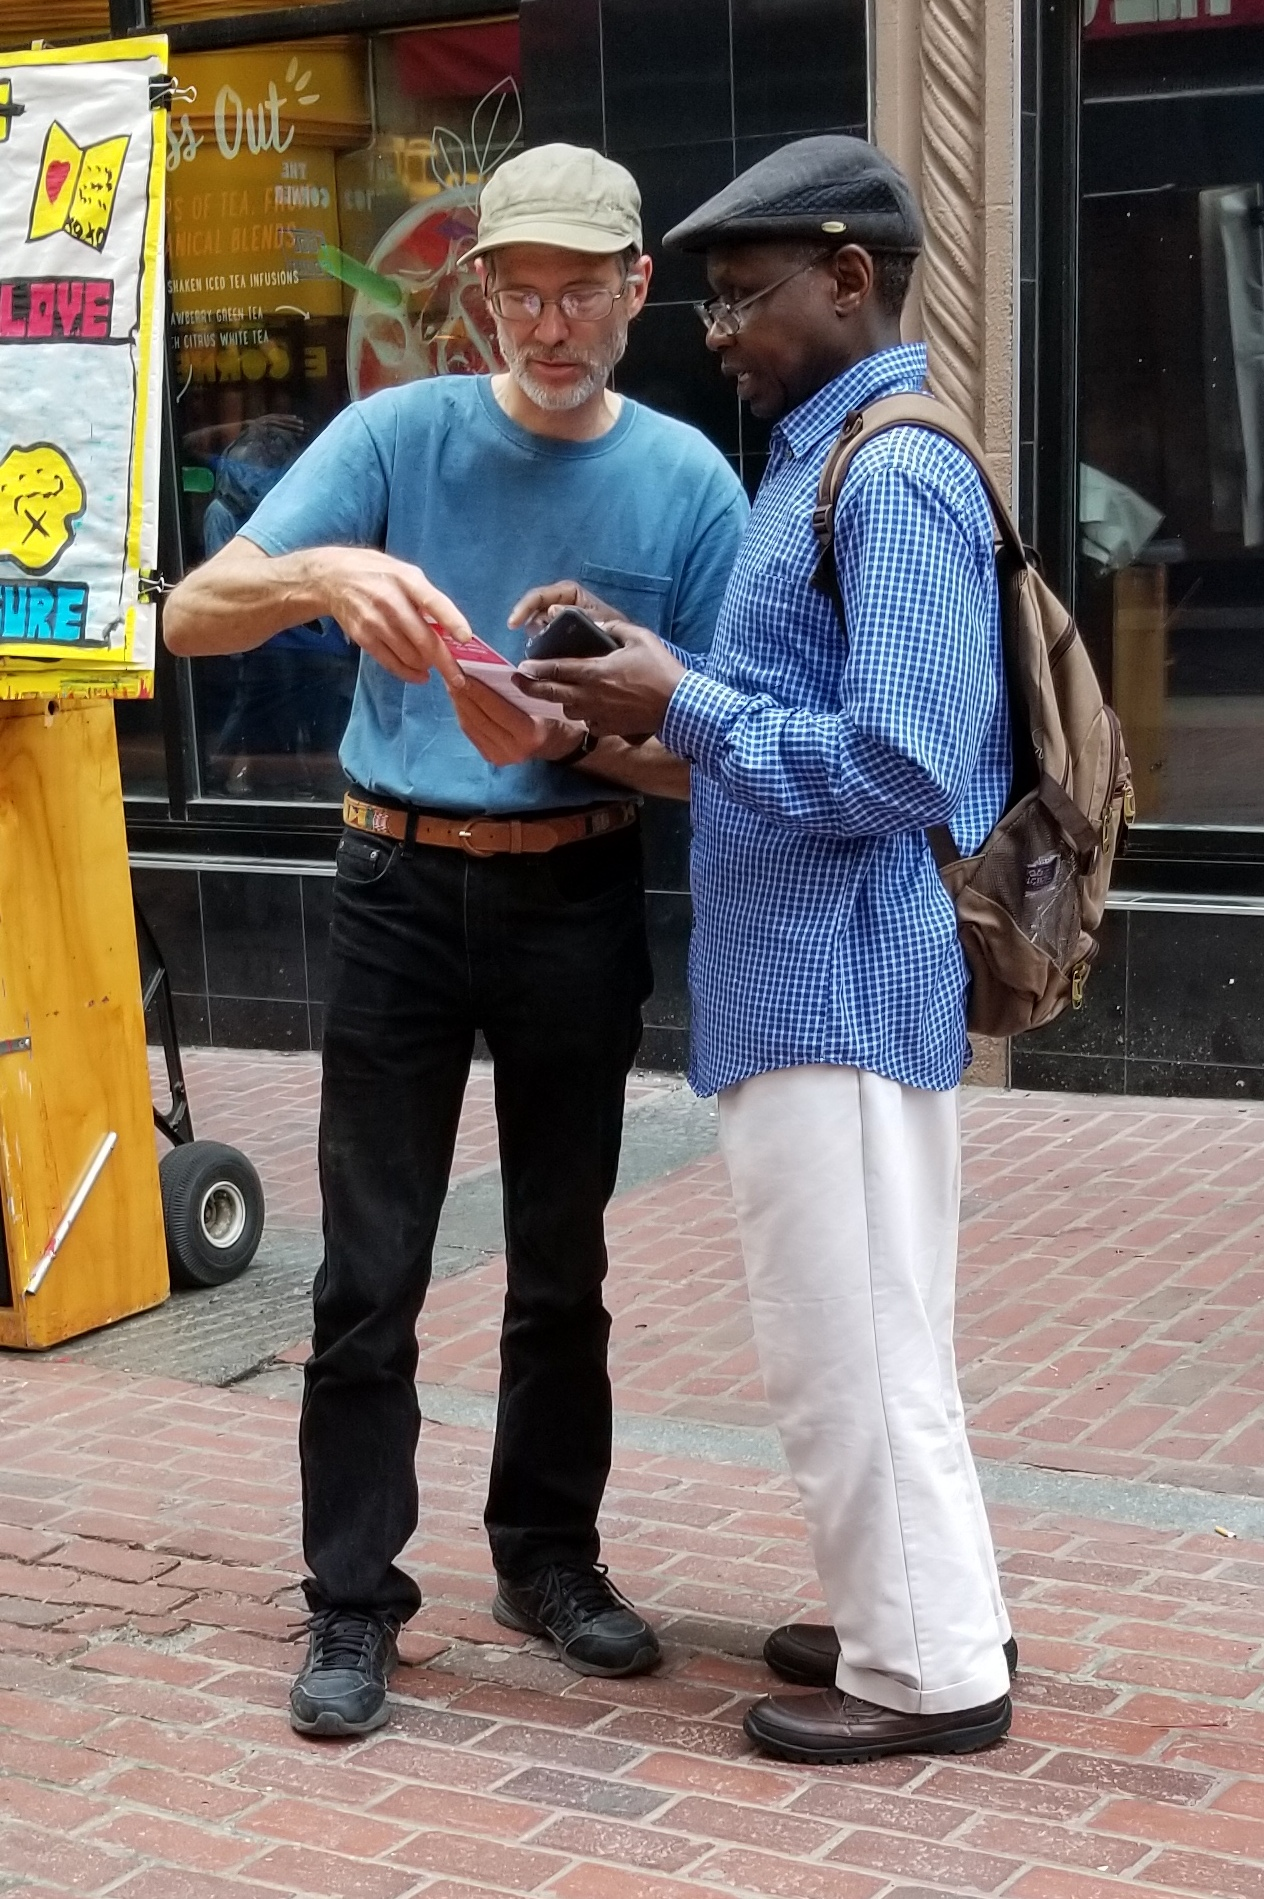 Bruce walking a man through a gospel booklet.